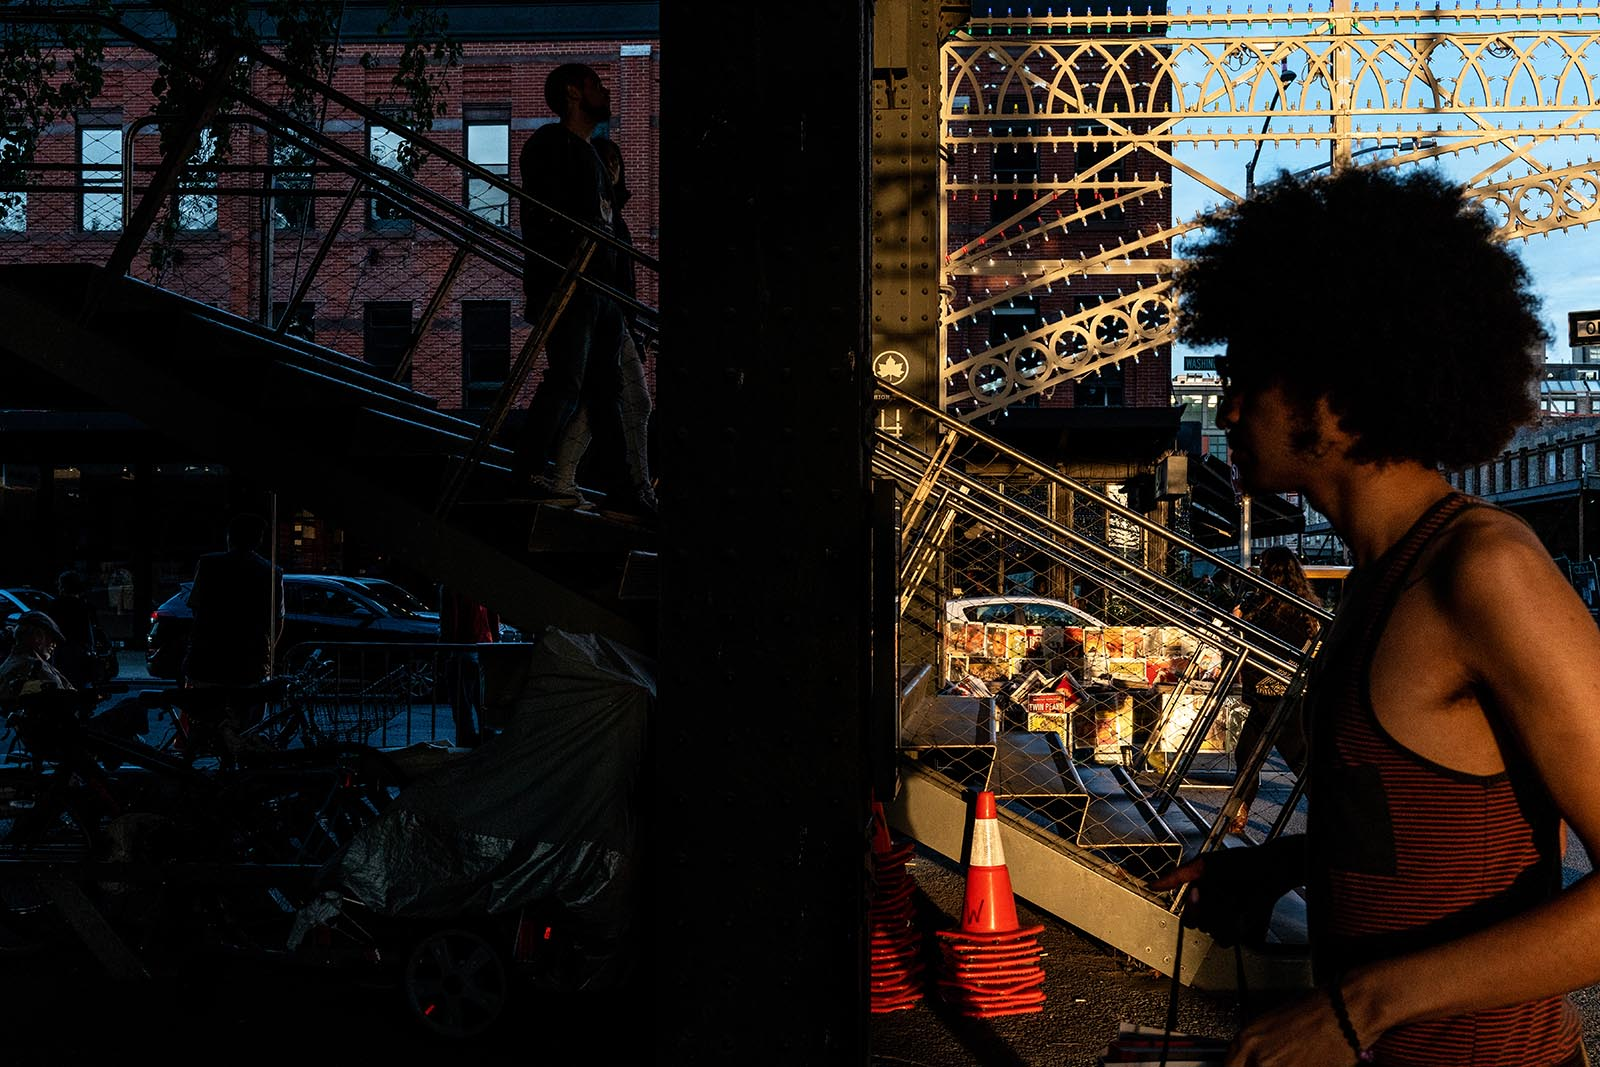 2019 Voice photo contest winner - a split frame street scene of shadow and darkness